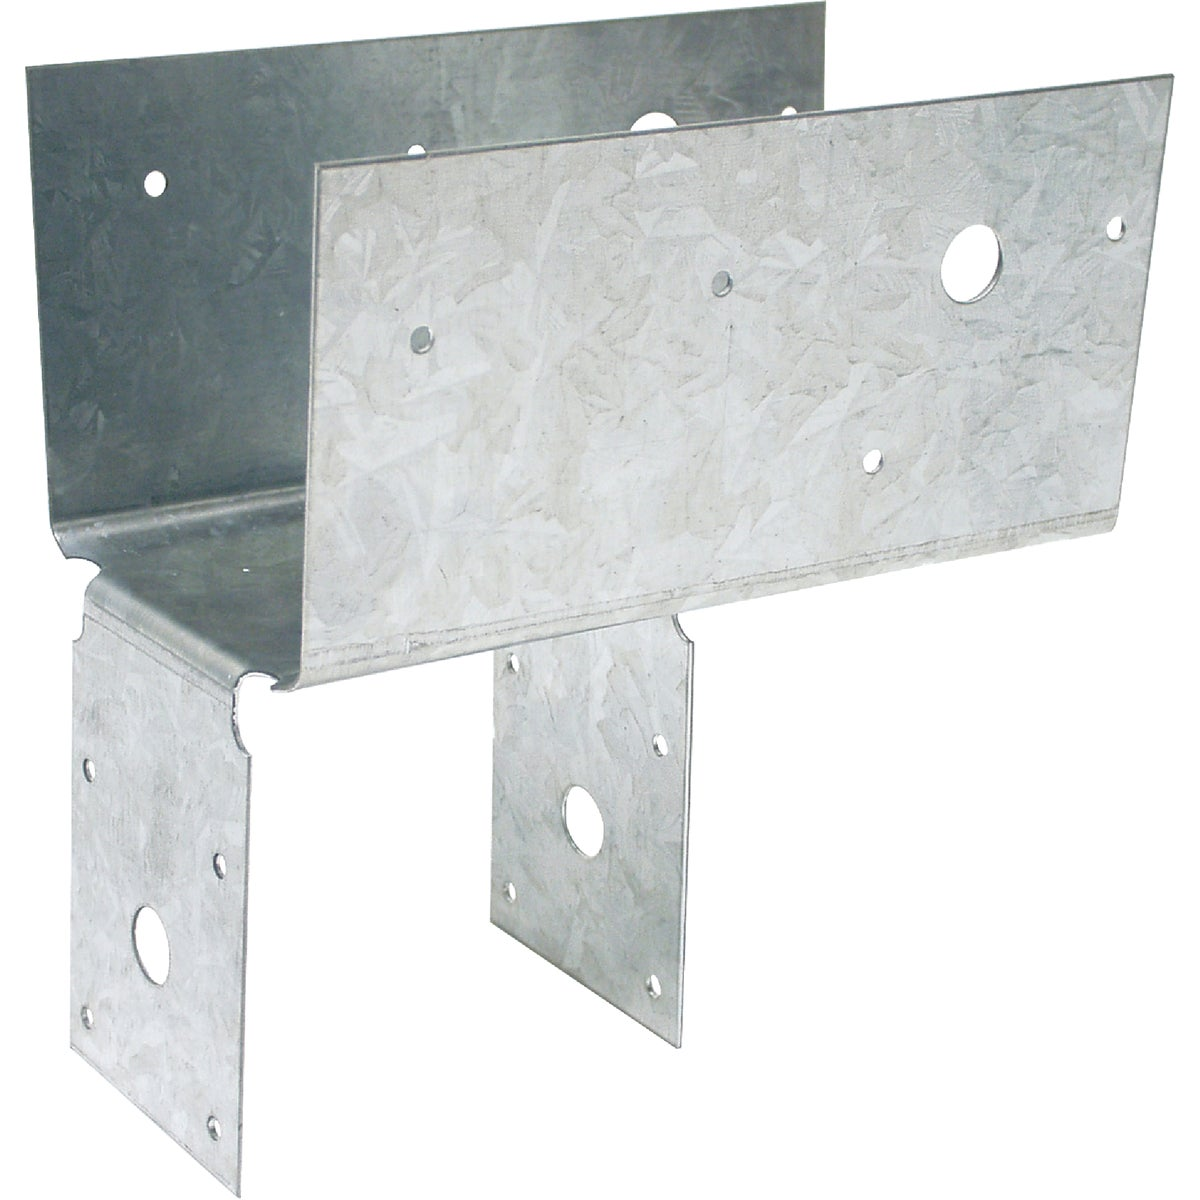 4X4 END POST CAP - EPC44-16 by Simpson Strong Tie